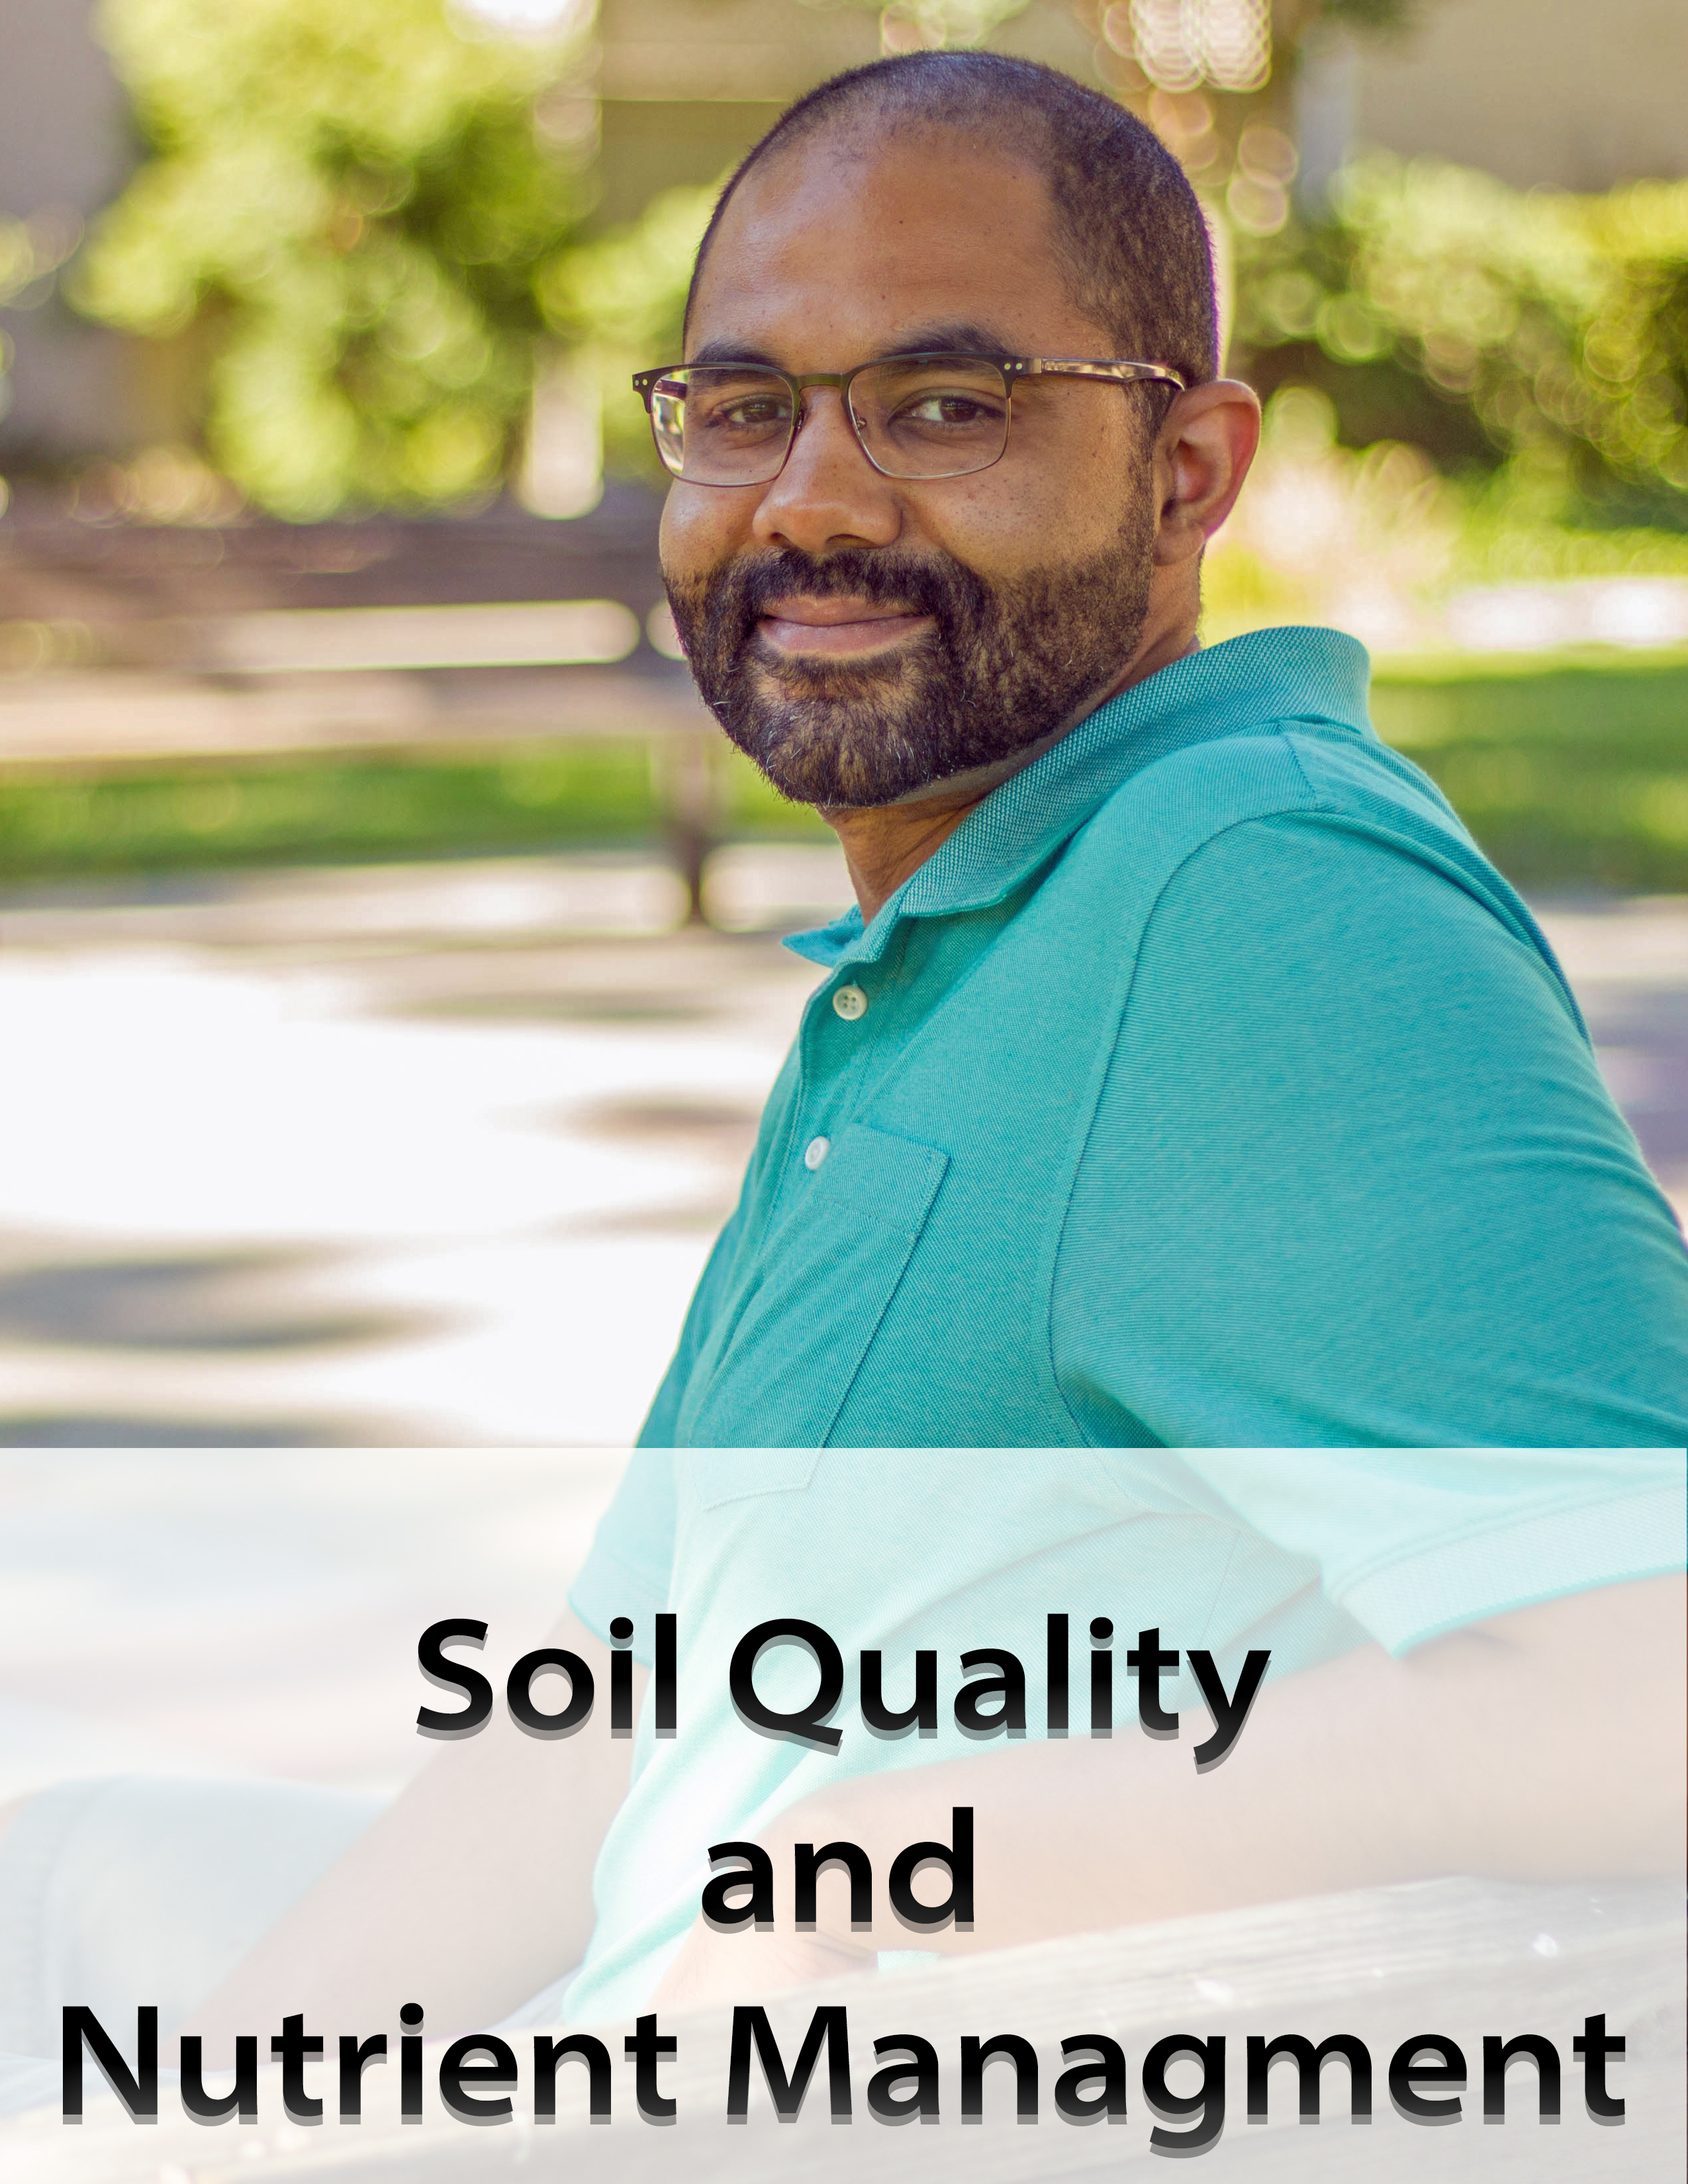 Dr. Anthony Fulford - Soil Quality and Nutrient Management